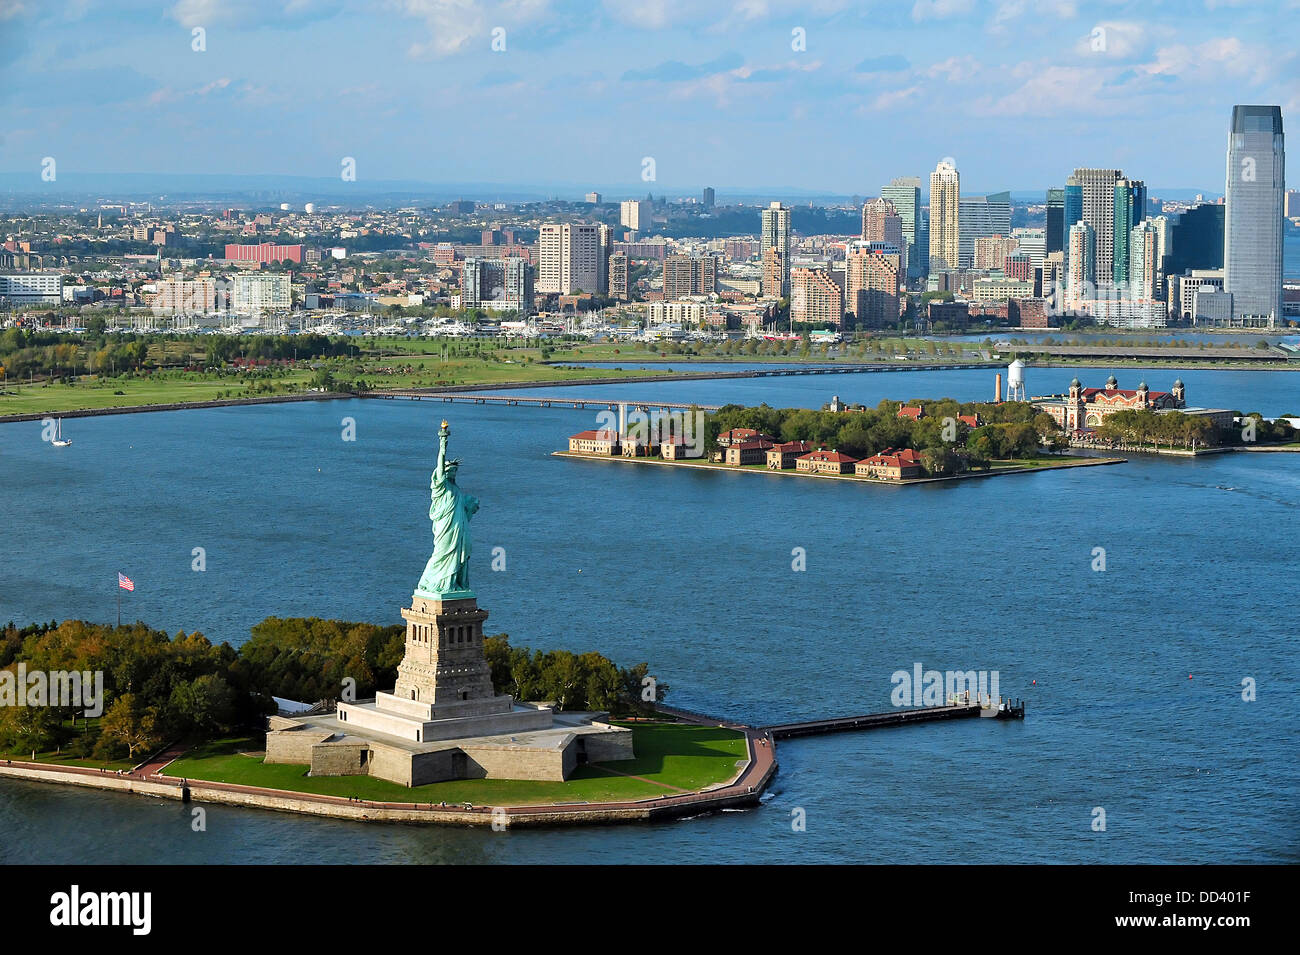 Aerial View Of The Statue Of Liberty And Ellis Island In